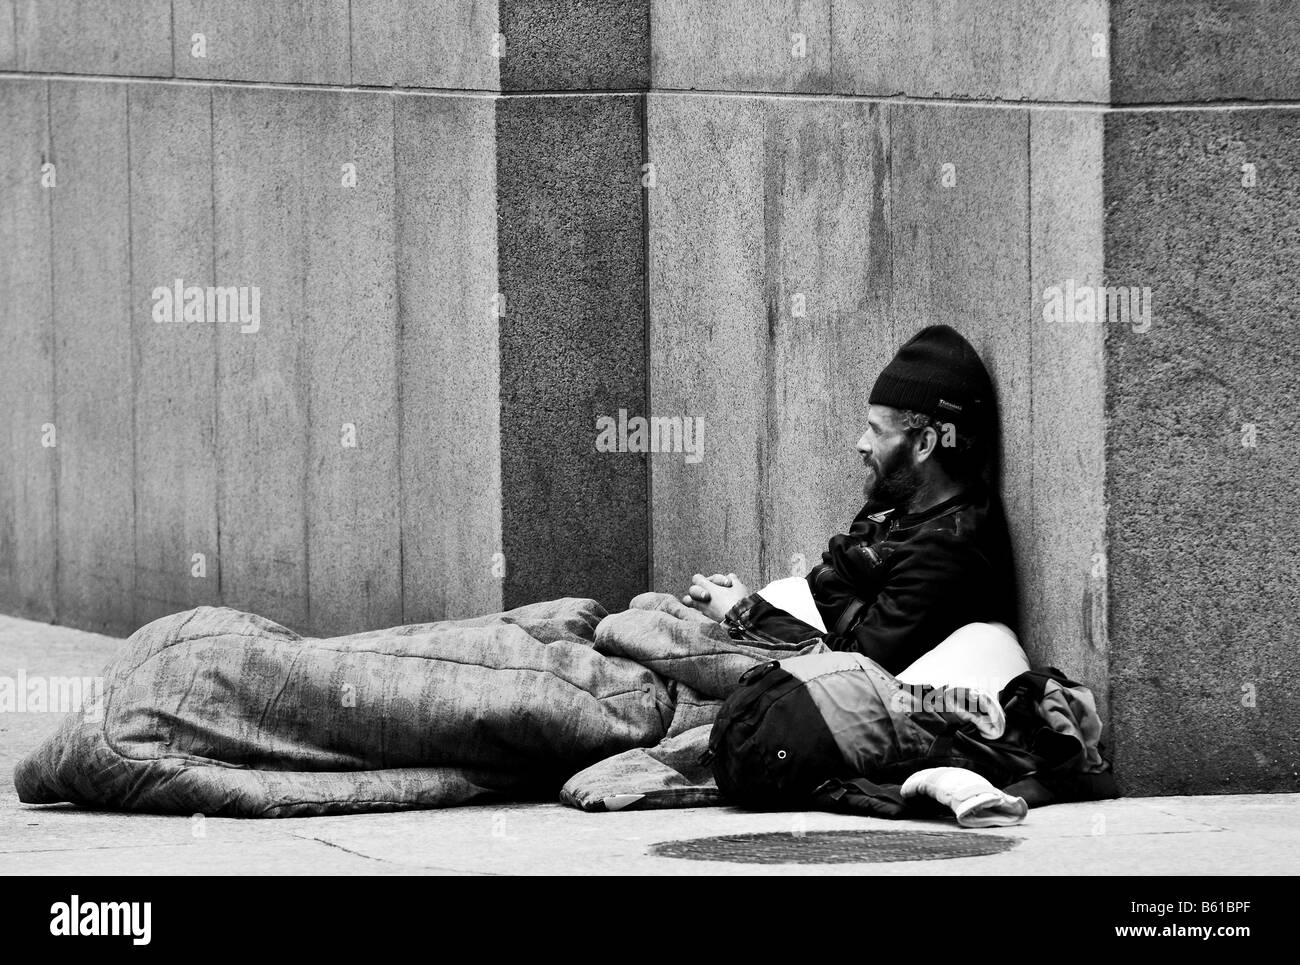 A black and white photo of a homeless man a bum a beggar sitting on the street corner of a street in a major city